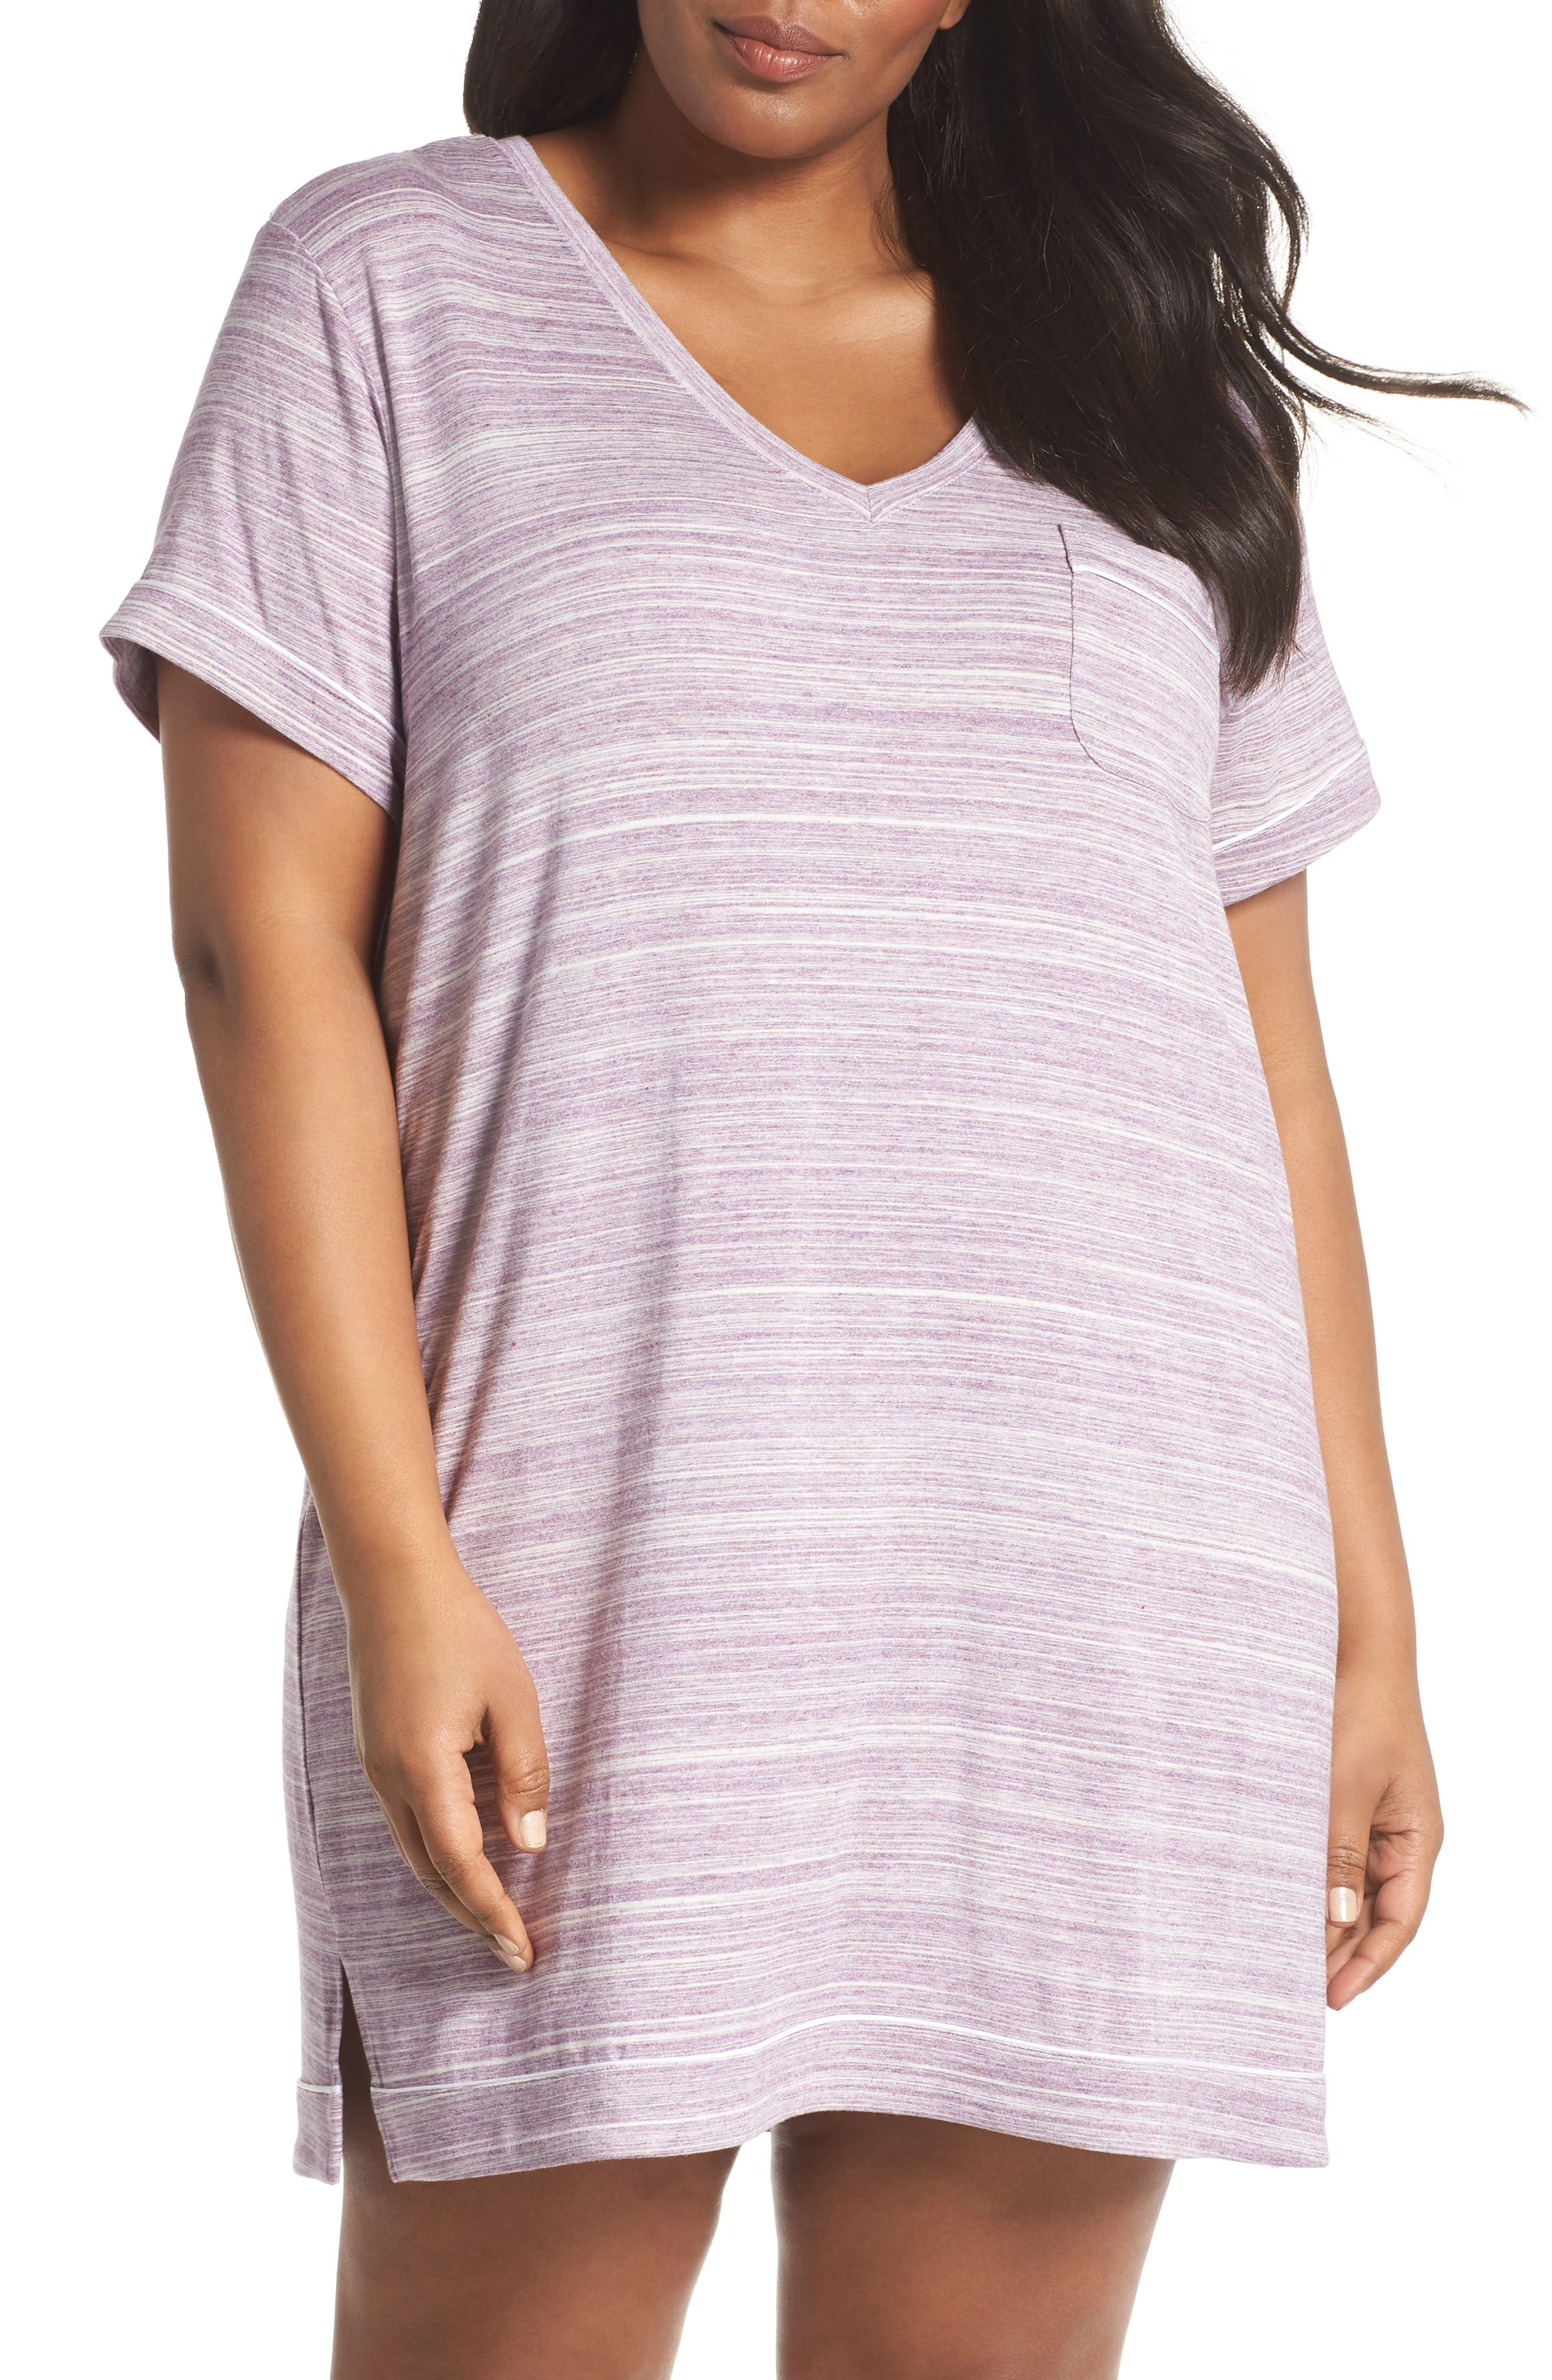 Moonlight V-Neck Nightshirt,                             Main thumbnail 1, color,                             Purple Spacedye